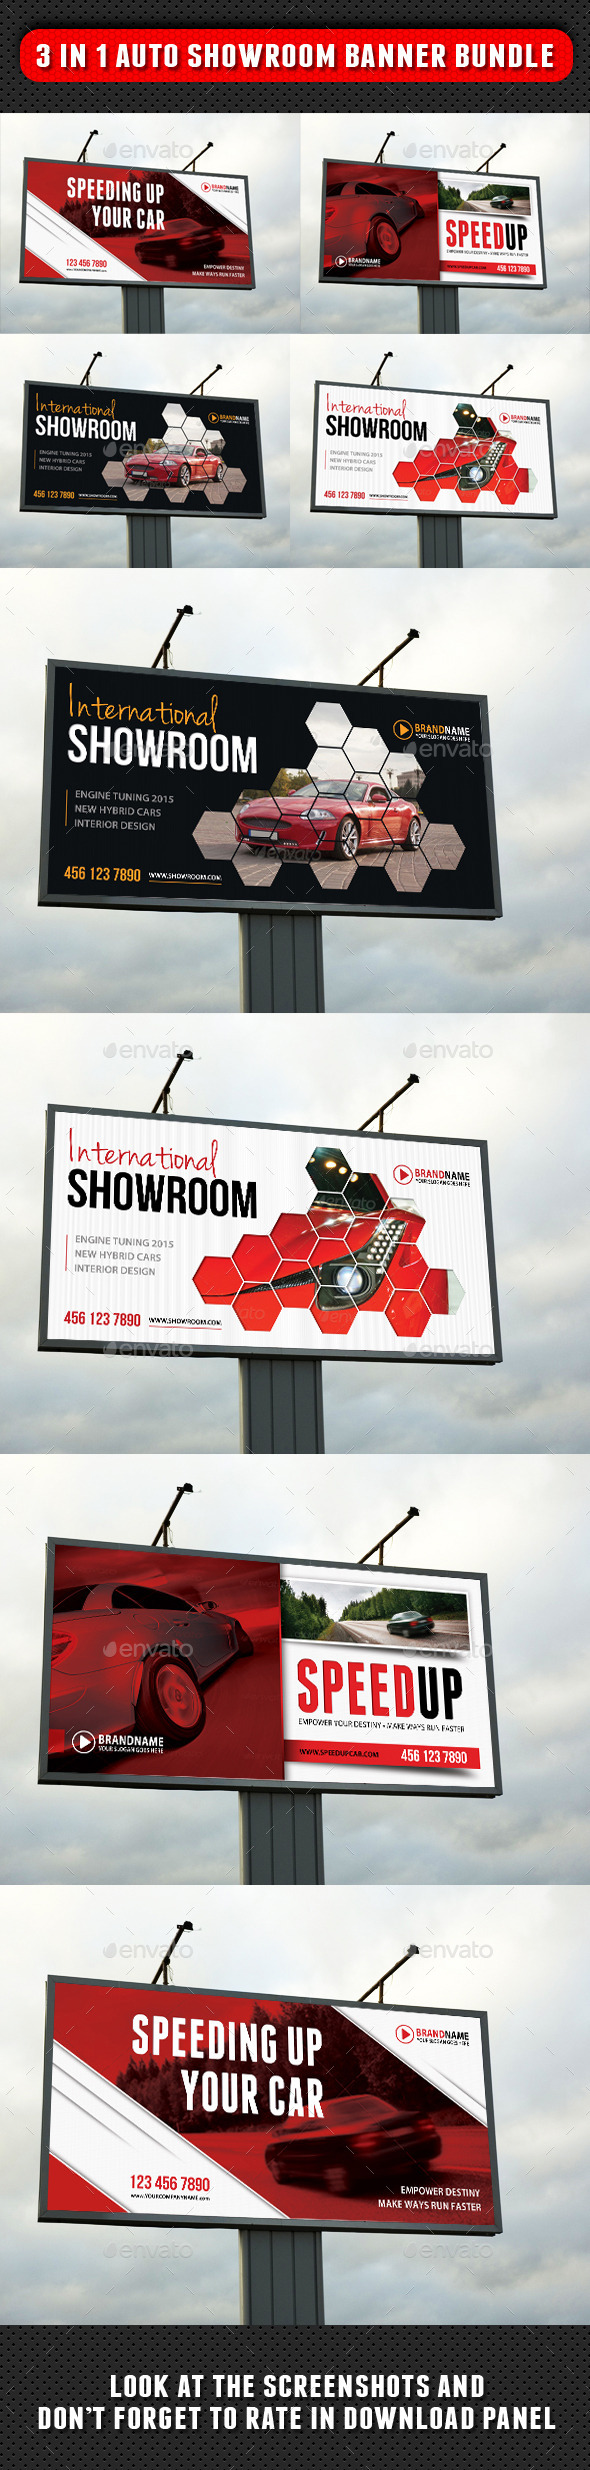 GraphicRiver 3 in 1 Auto Showroom Outdoor Banner Bundle 8942844